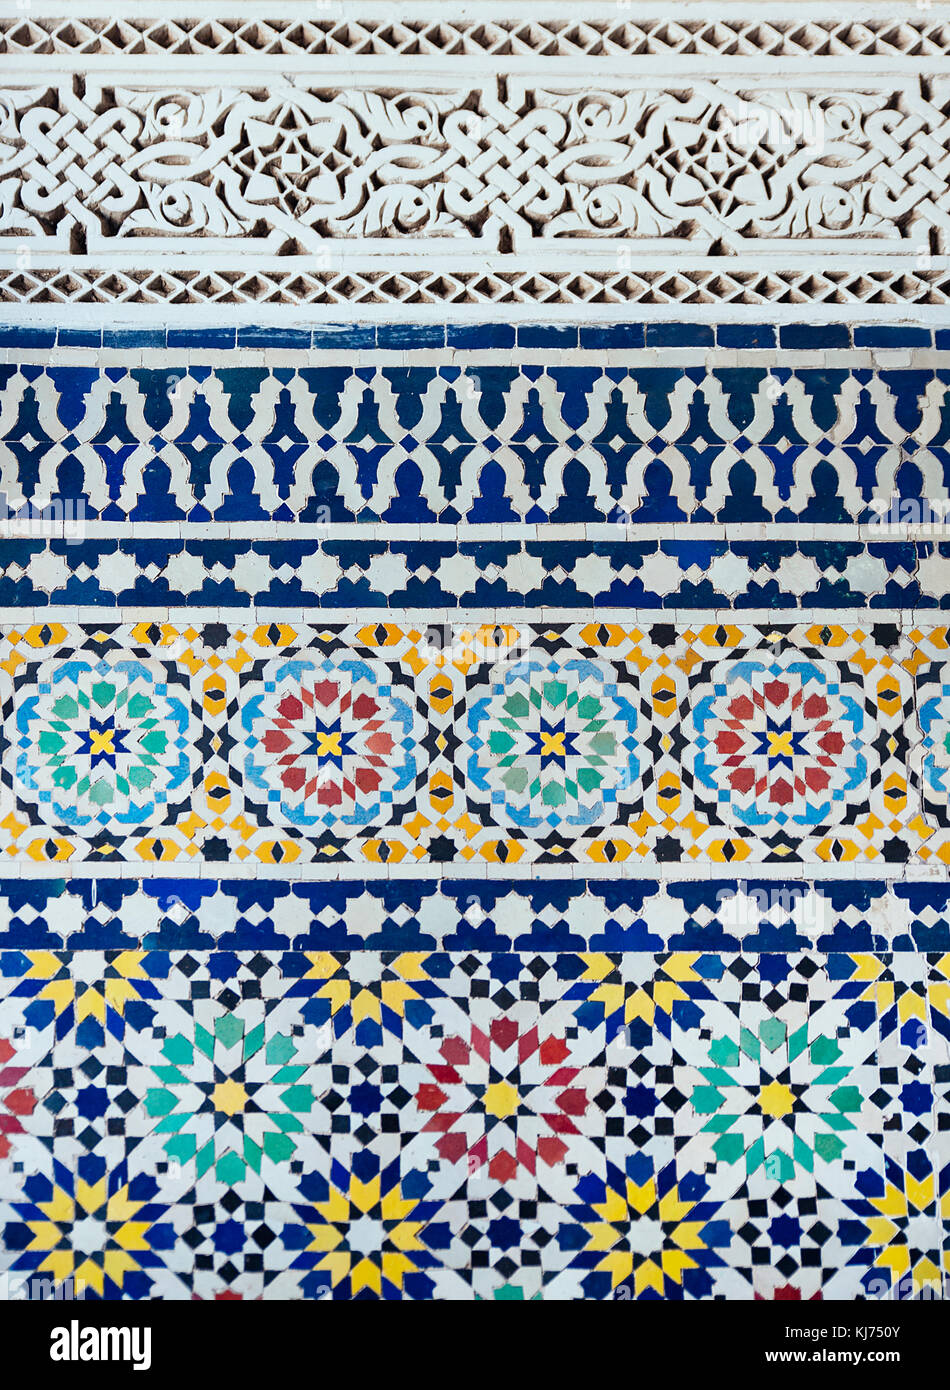 Geometrical colorful middle east tile Stock Photo: 166114731 - Alamy